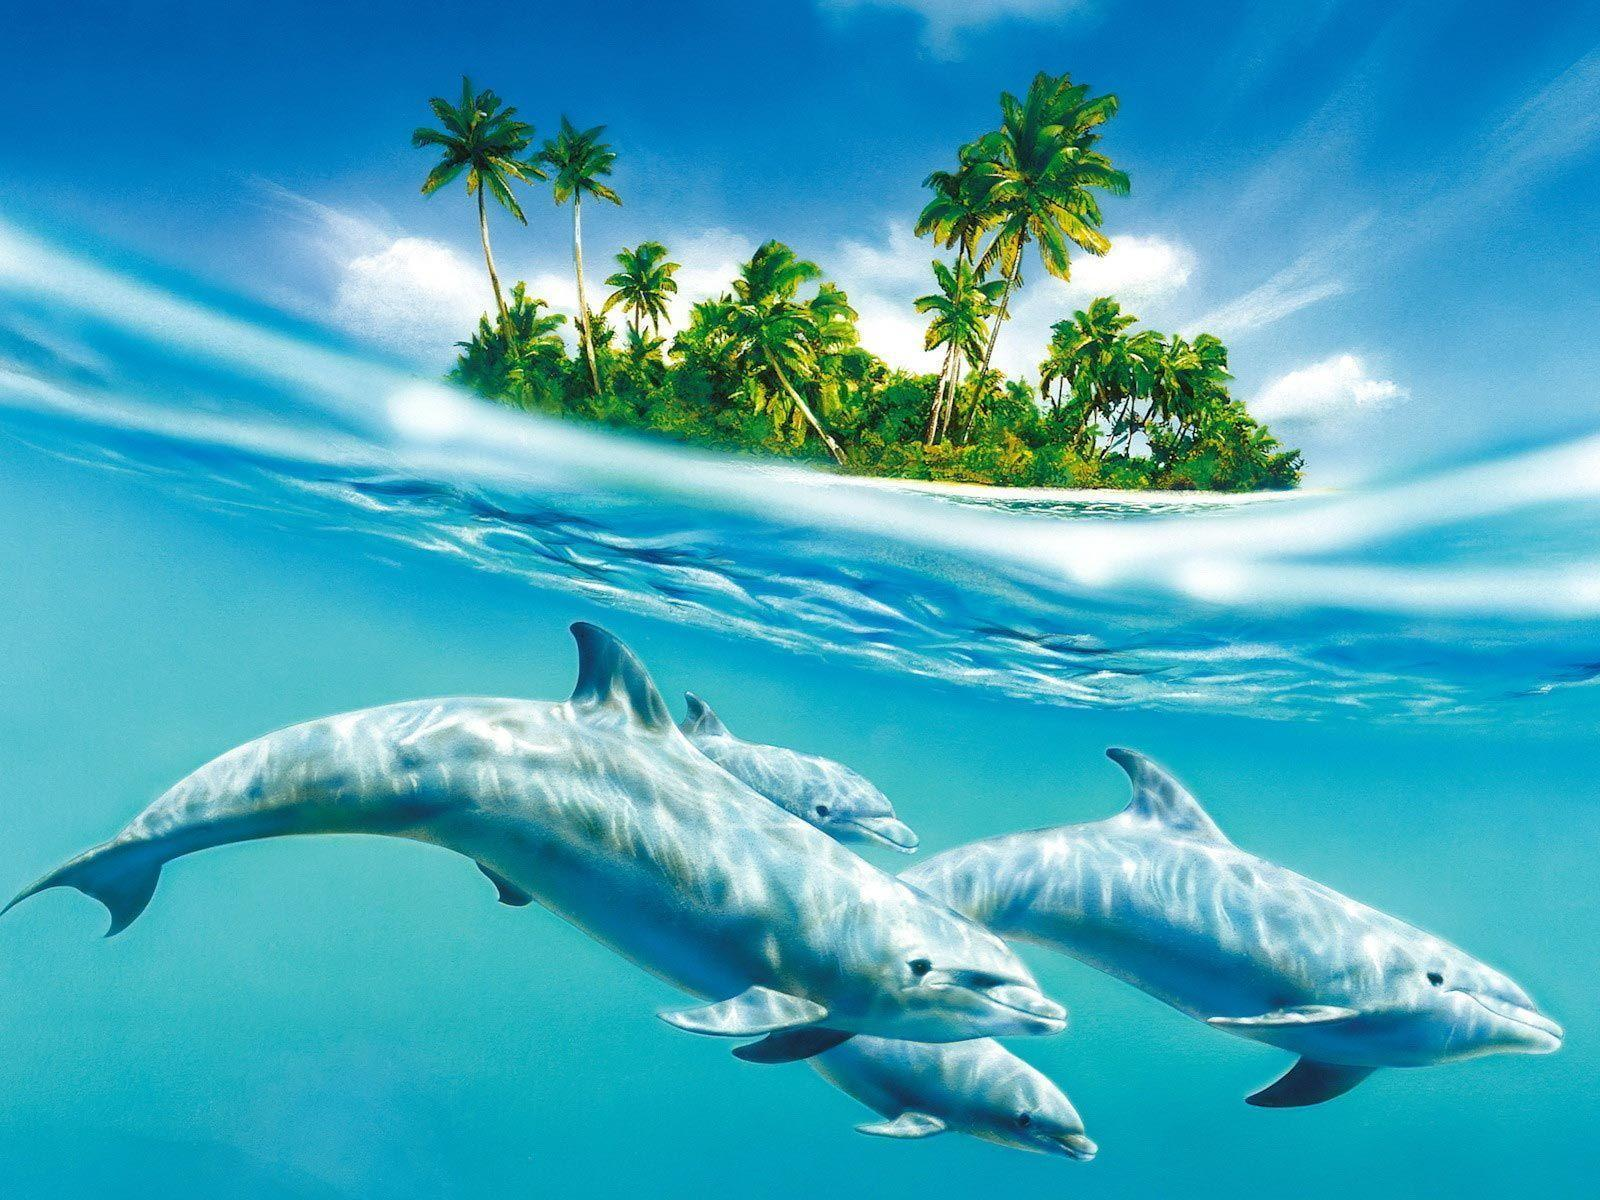 Dolphin Desktop Wallpapers Top Free Dolphin Desktop